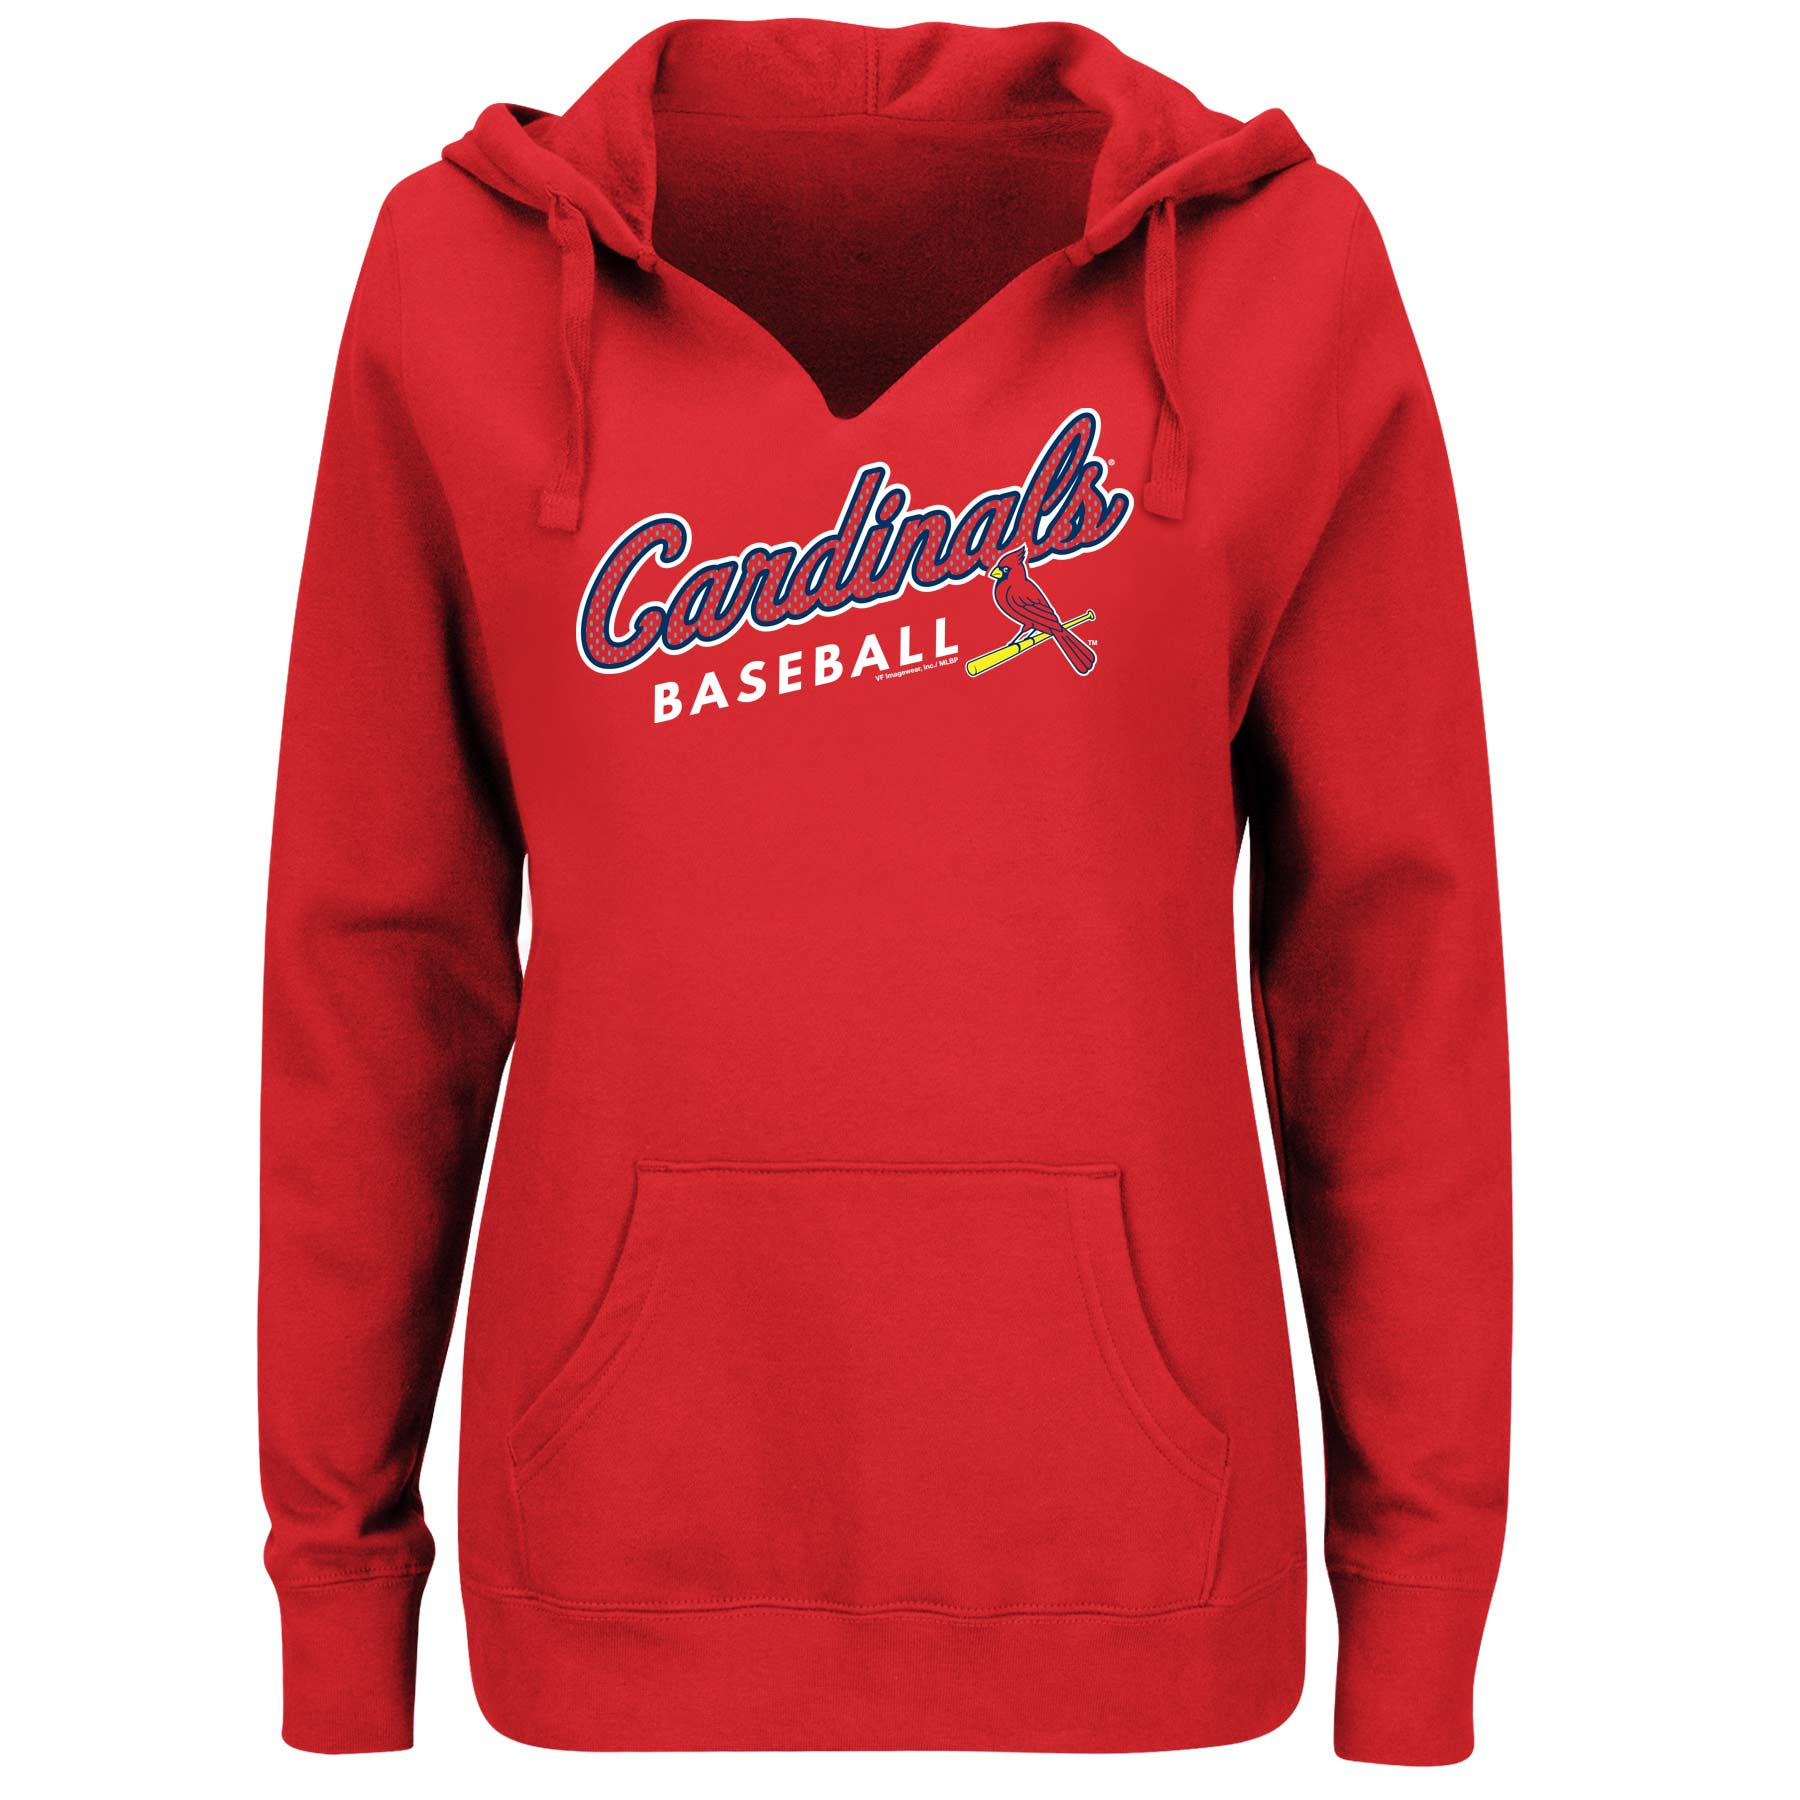 Women's Majestic Red St. Louis Cardinals Fresh & Exciting V-Neck Pullover Hoodie